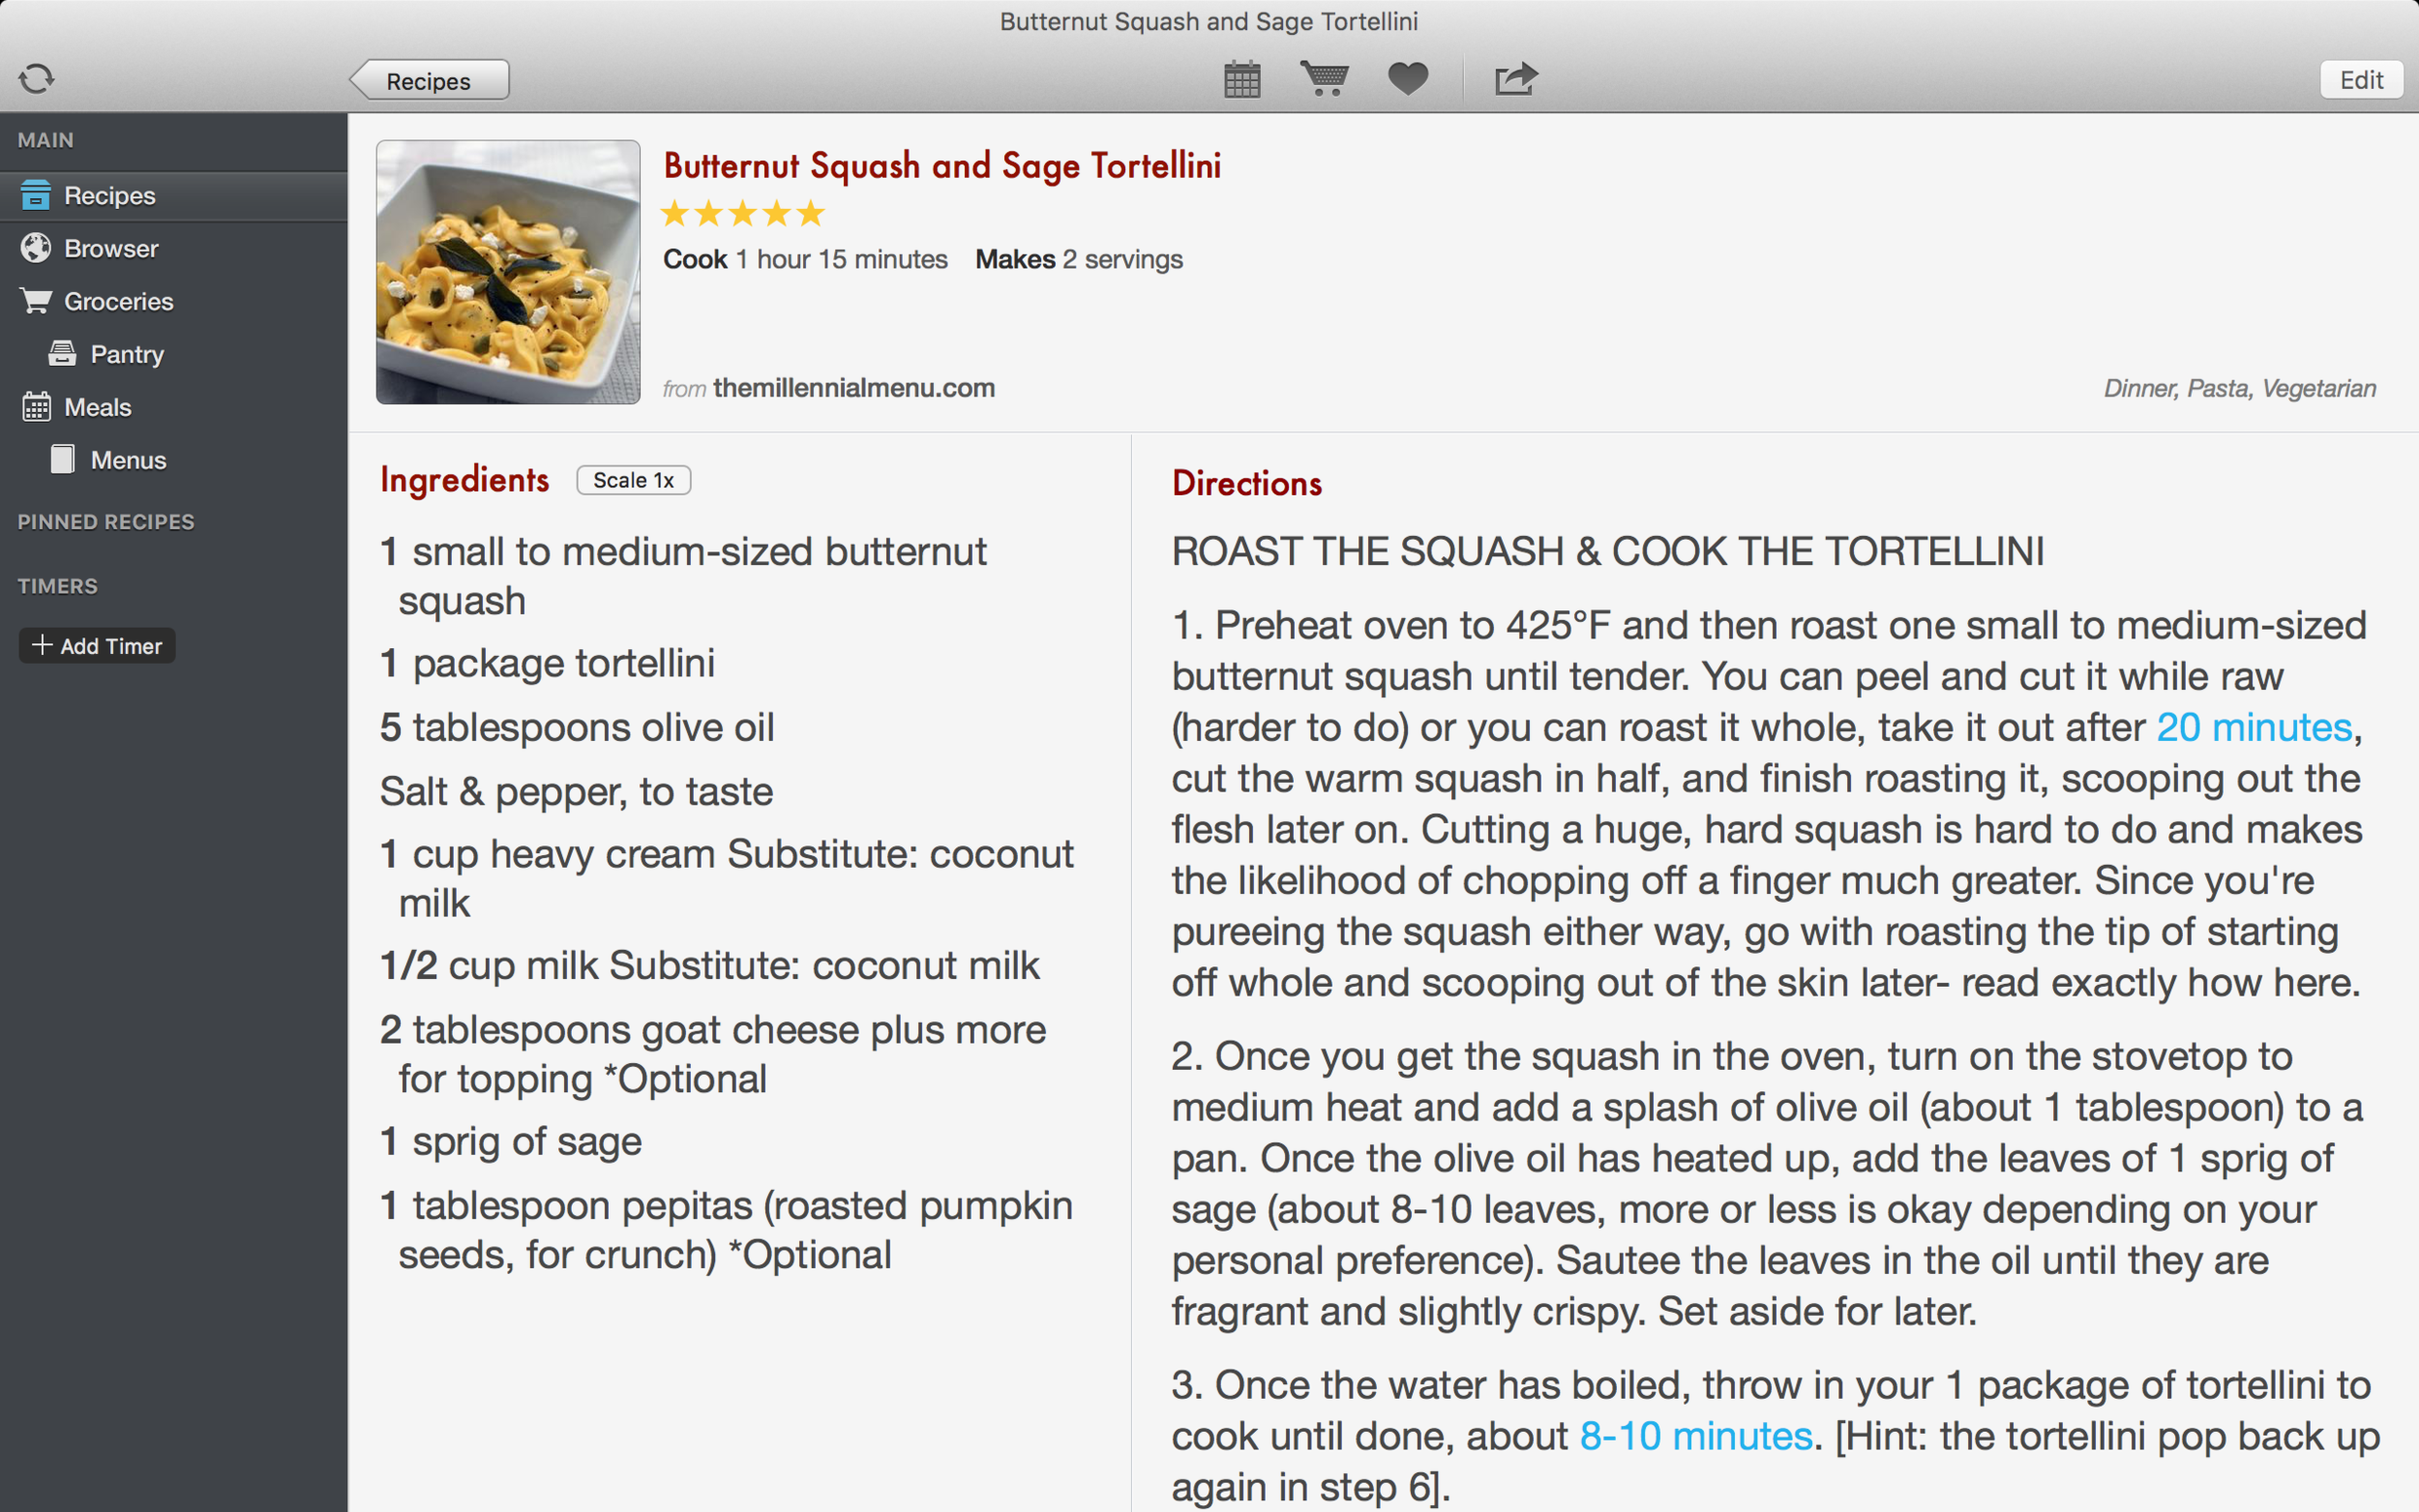 Read and adjust recipes within the app.